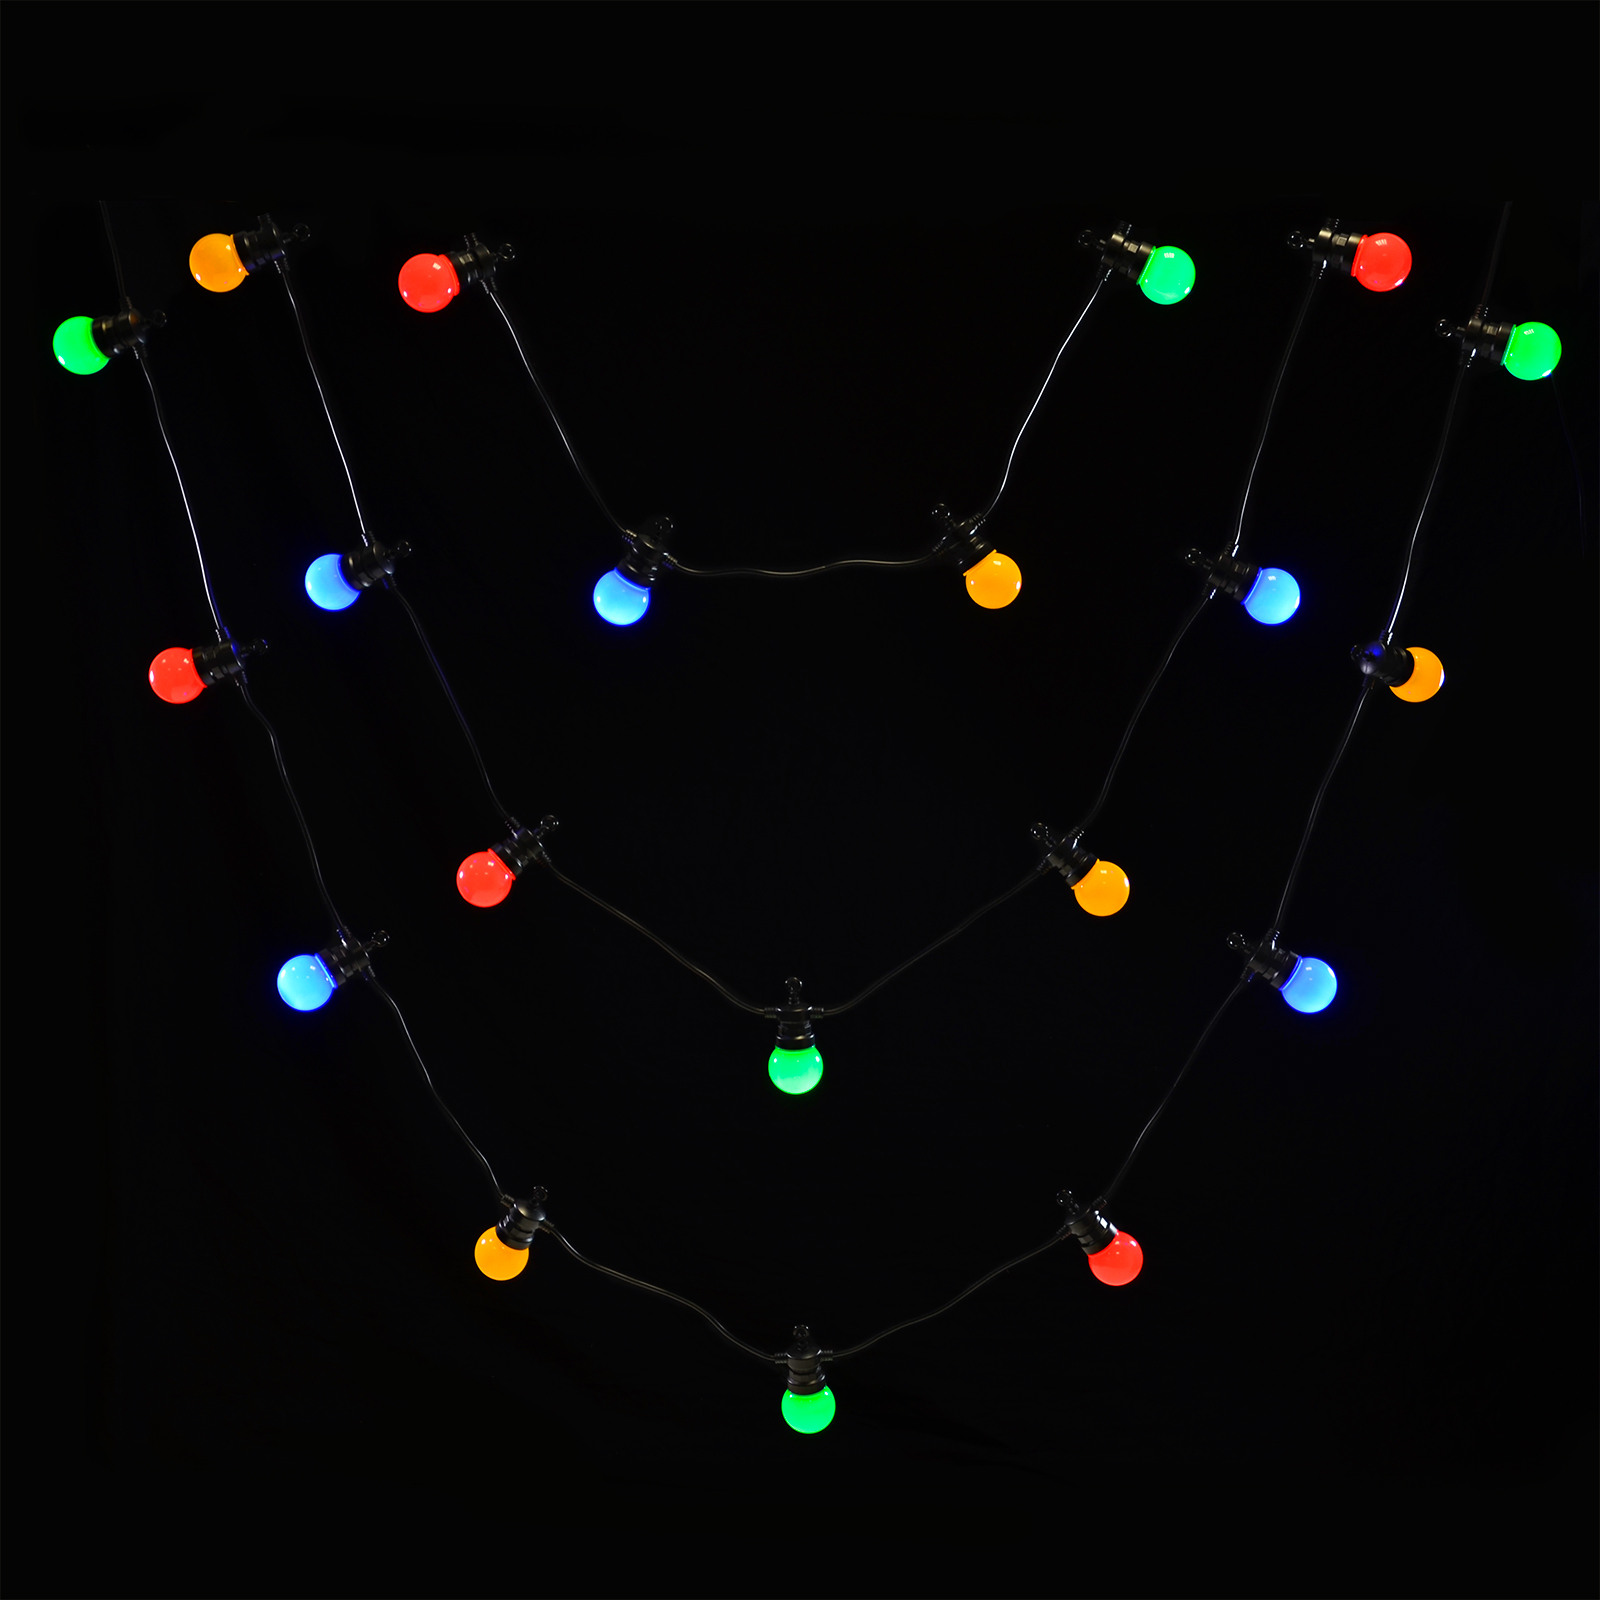 Outdoor Led Bulb String Lights : 20 Connectable LED Christmas Party Outdoor String Lights Static Round Globe Bulb